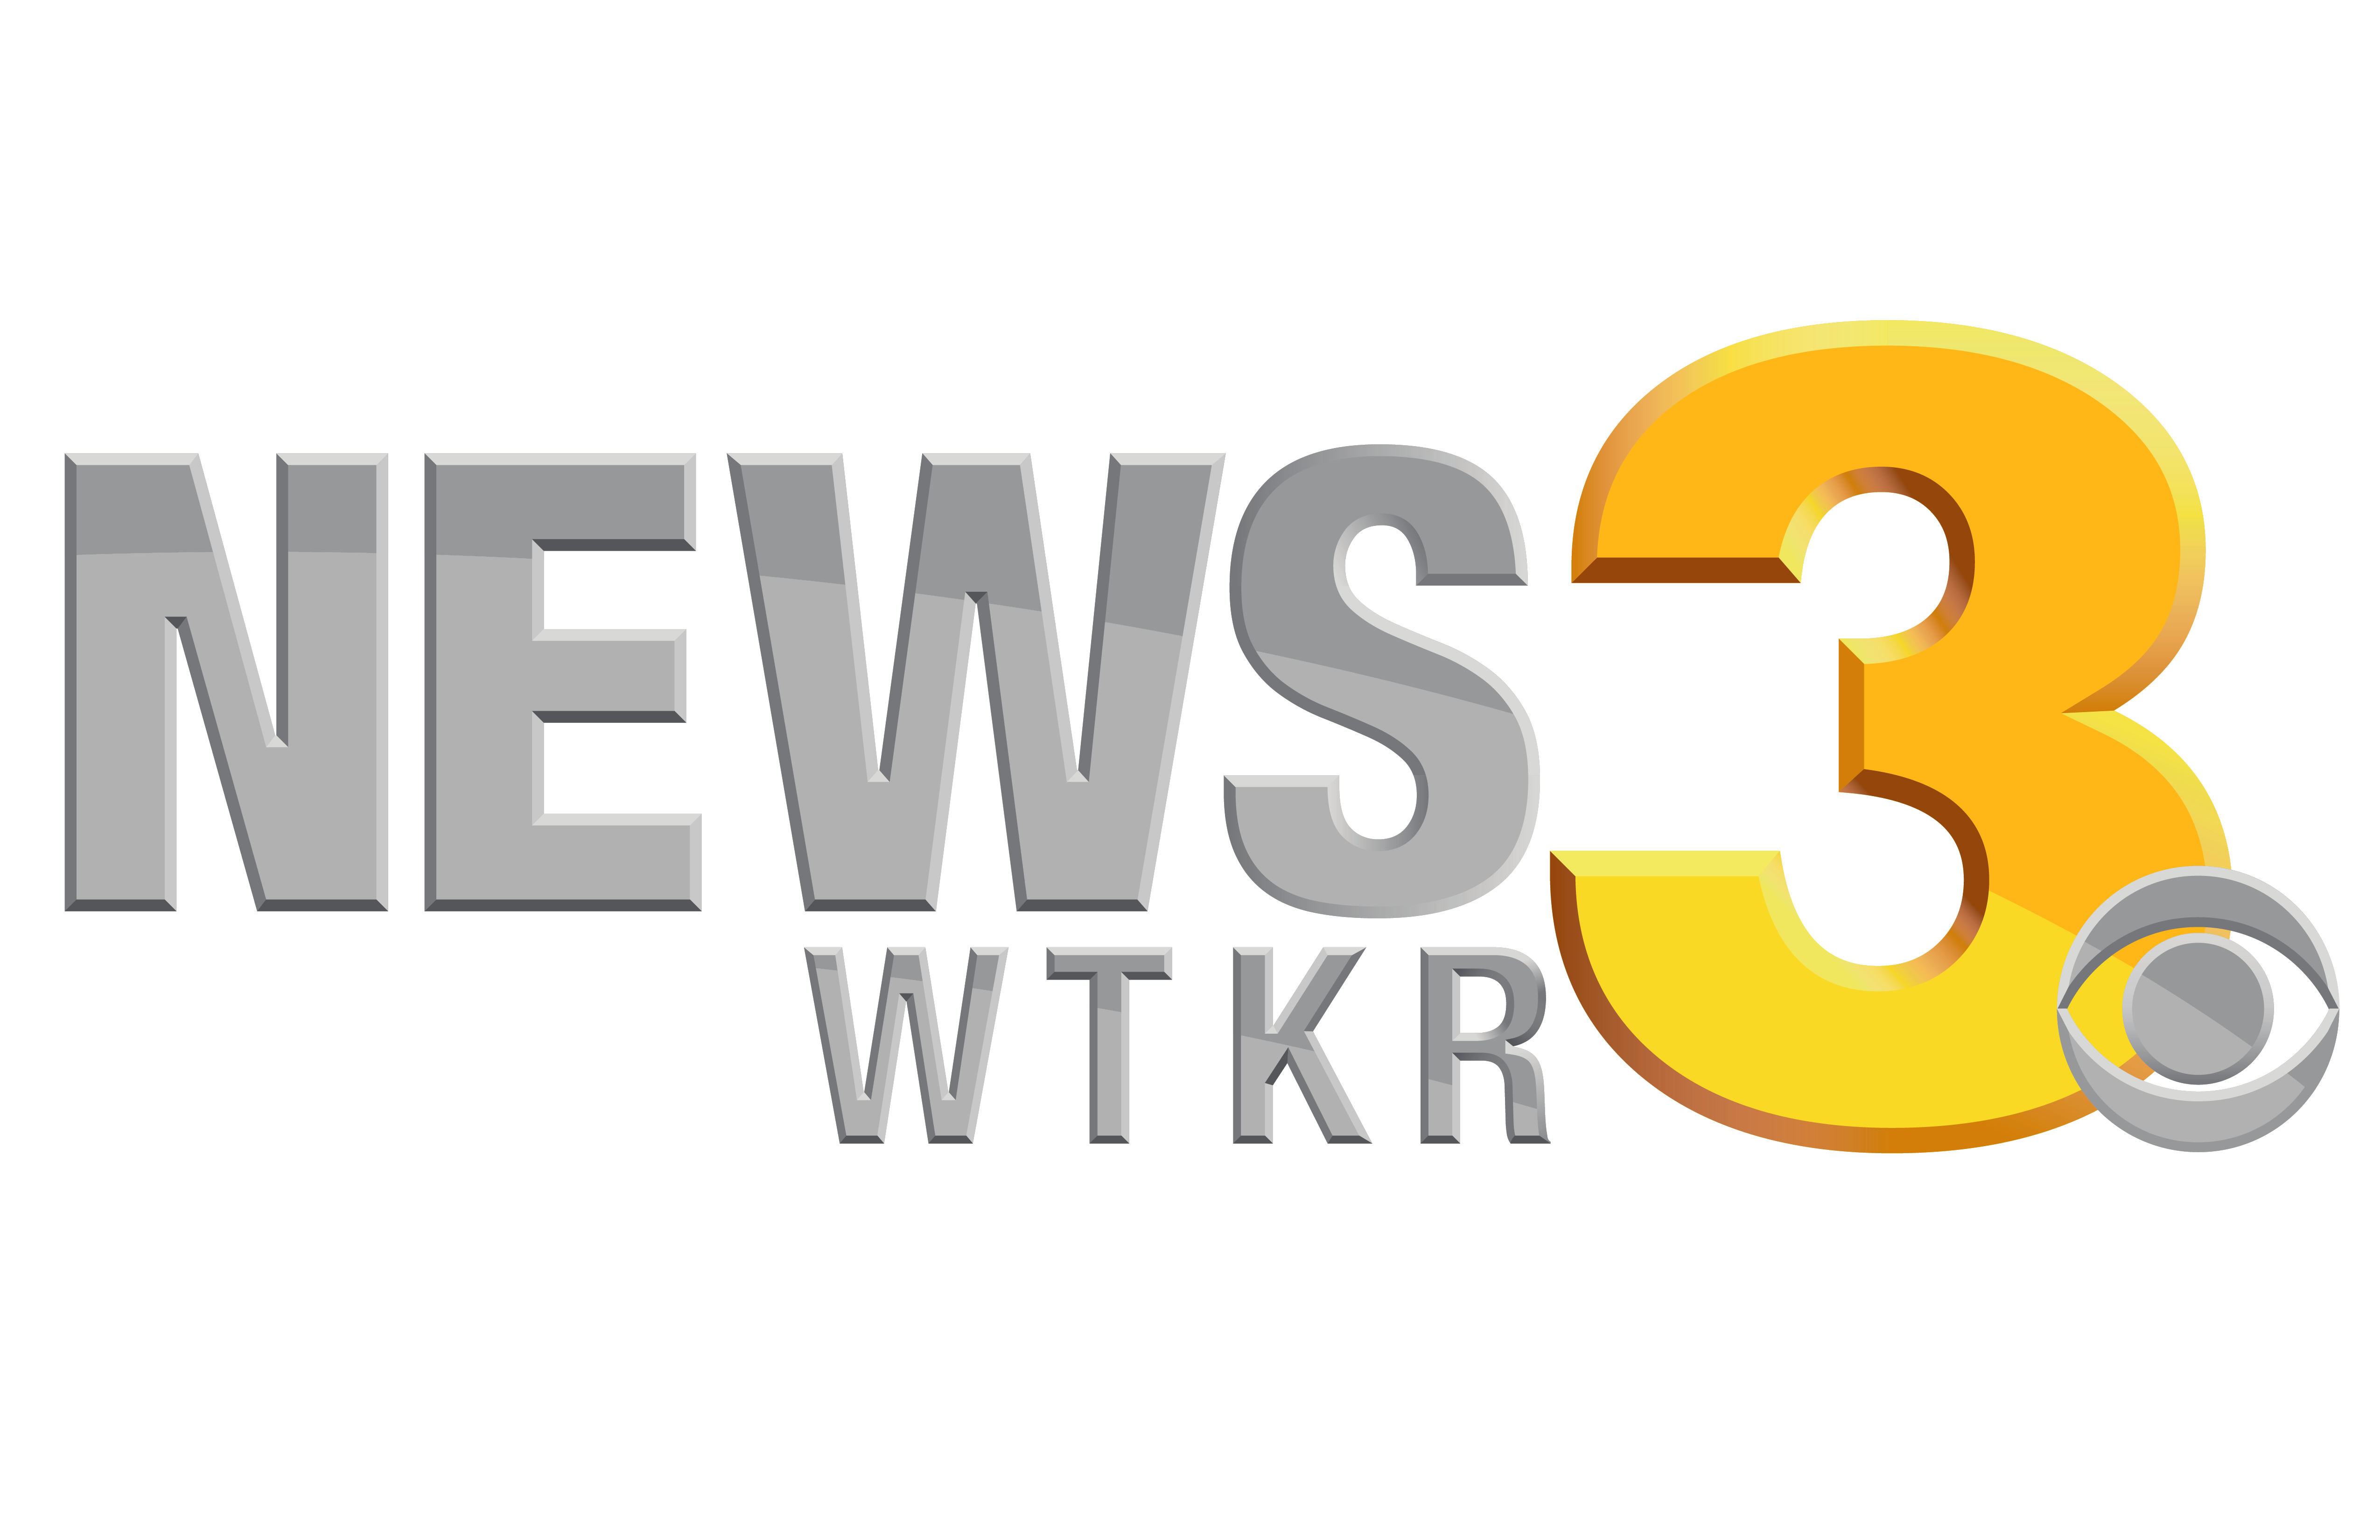 WTKR Channel 3